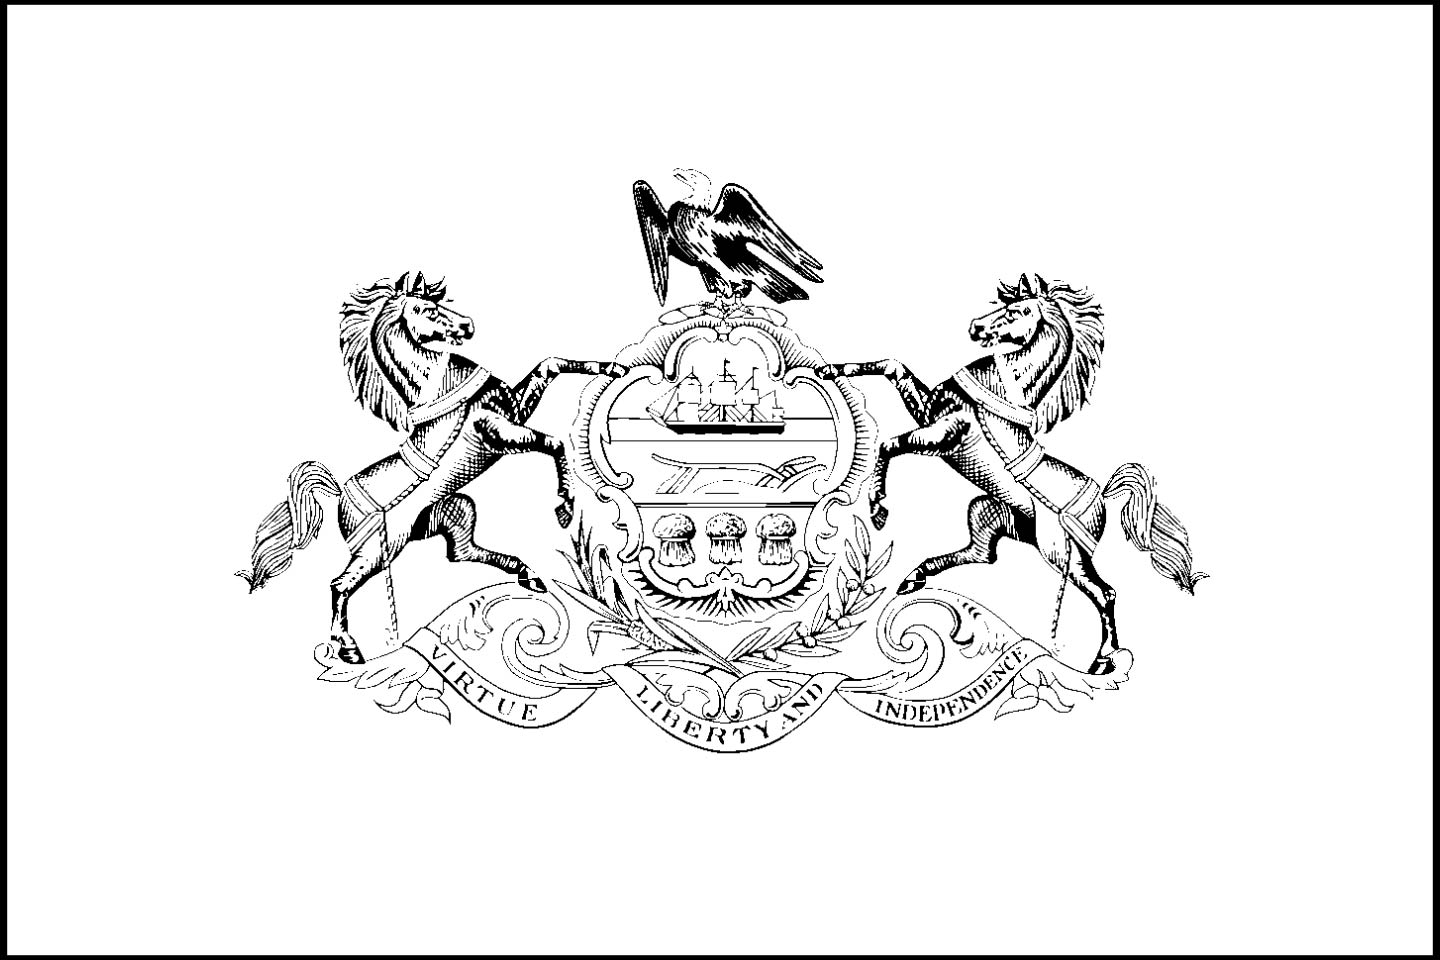 download pennsylvania state flag line drawings jpg